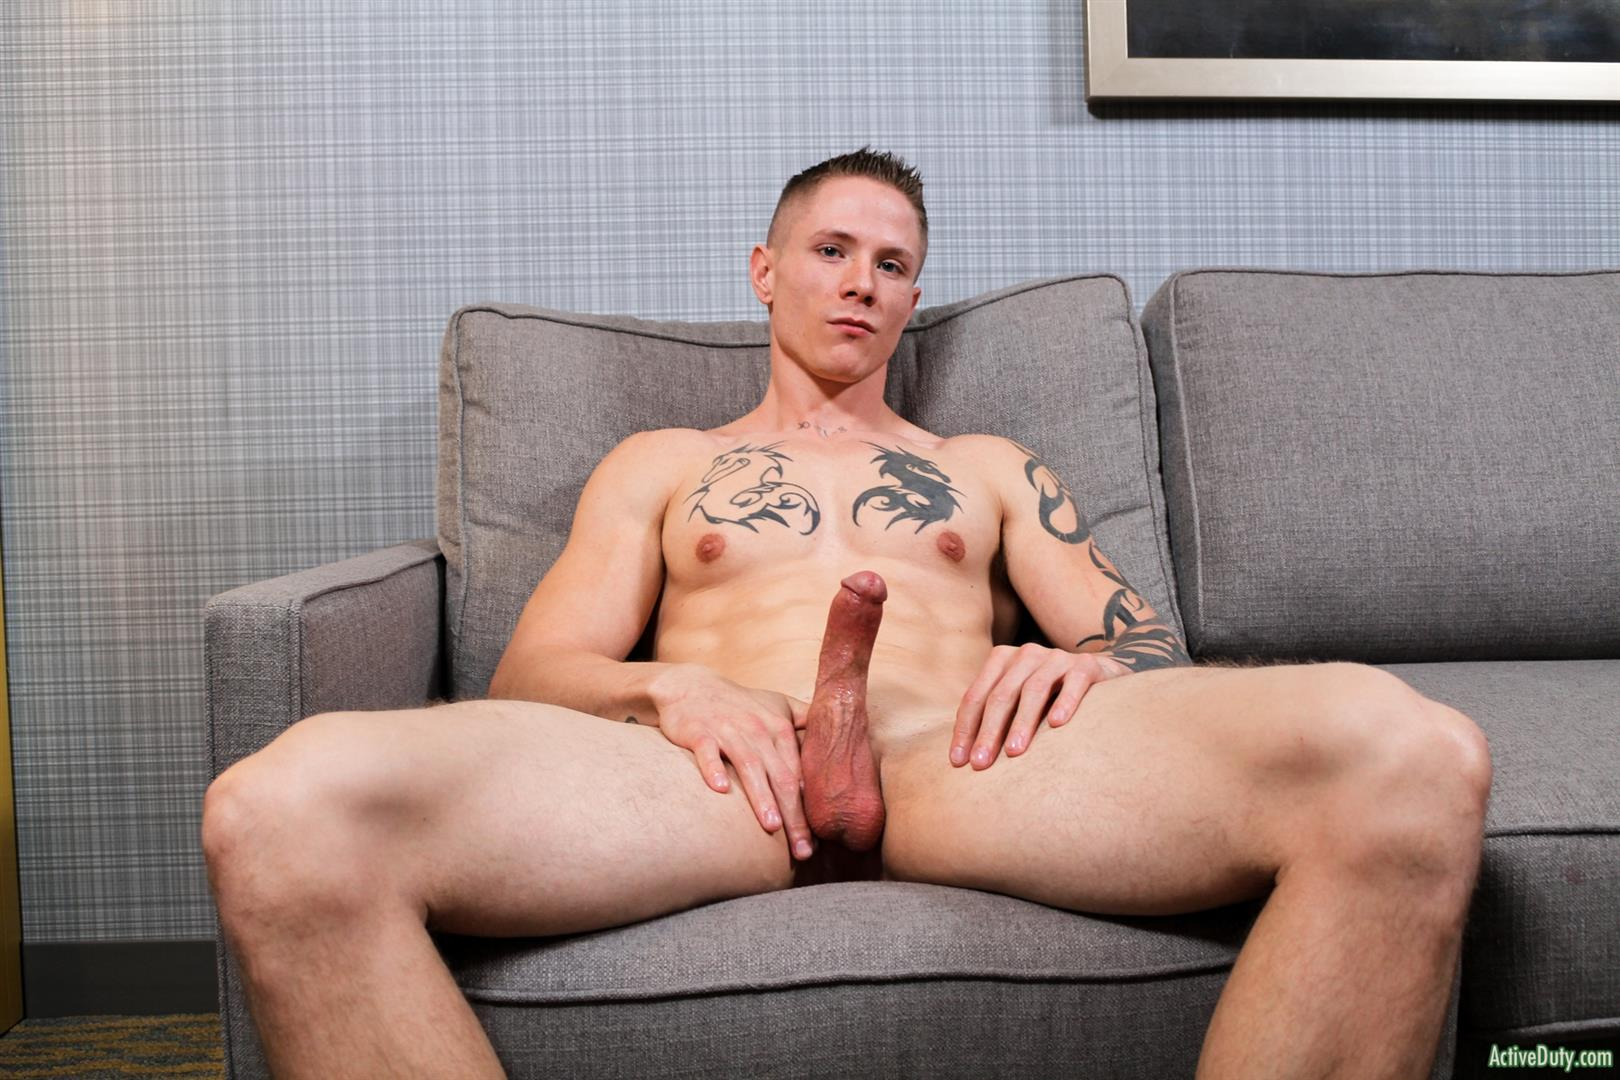 Straight guy jerking off to gay porn